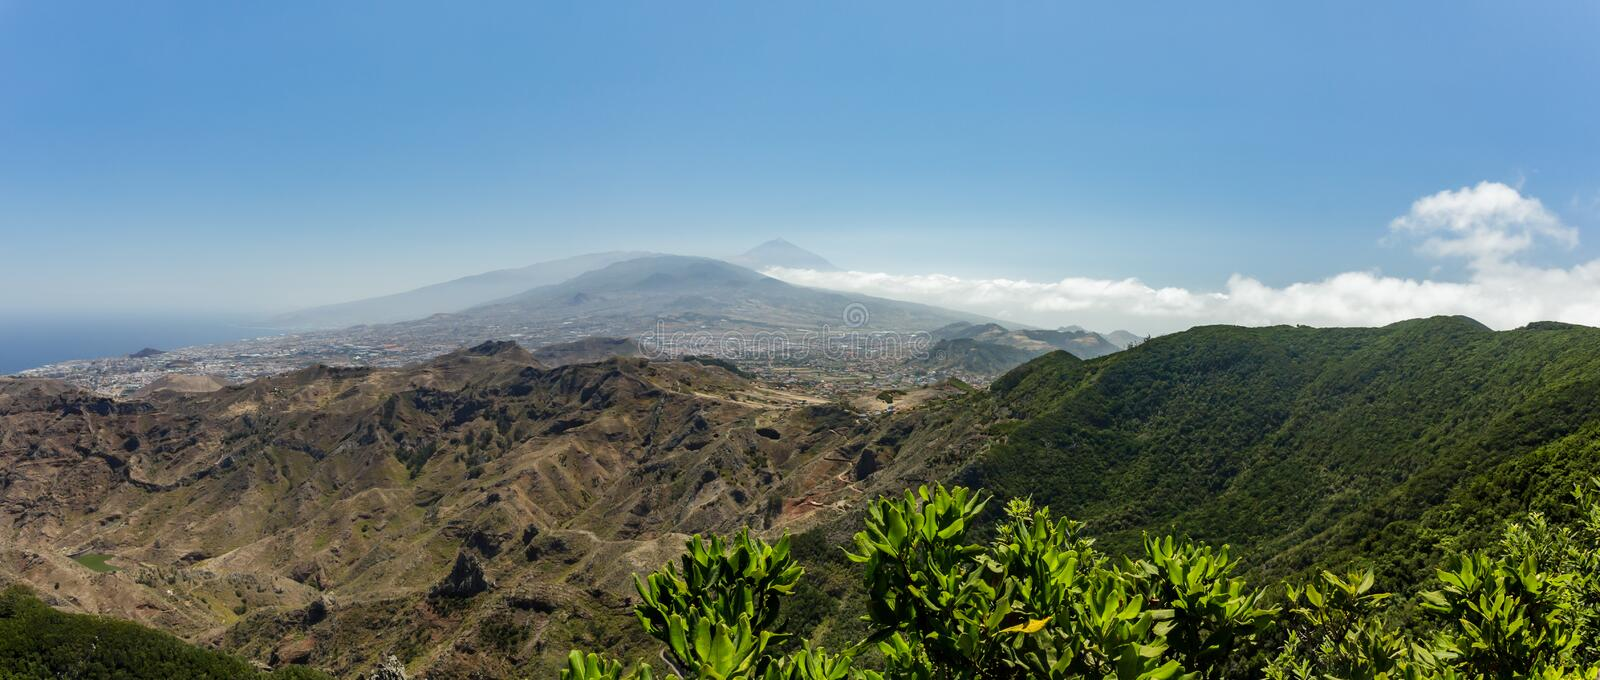 Aerial Coast view of mountains Anaga and La Laguna valley. Sunny day, clear blue sky with little fluffy white clouds. Oldest part royalty free stock images